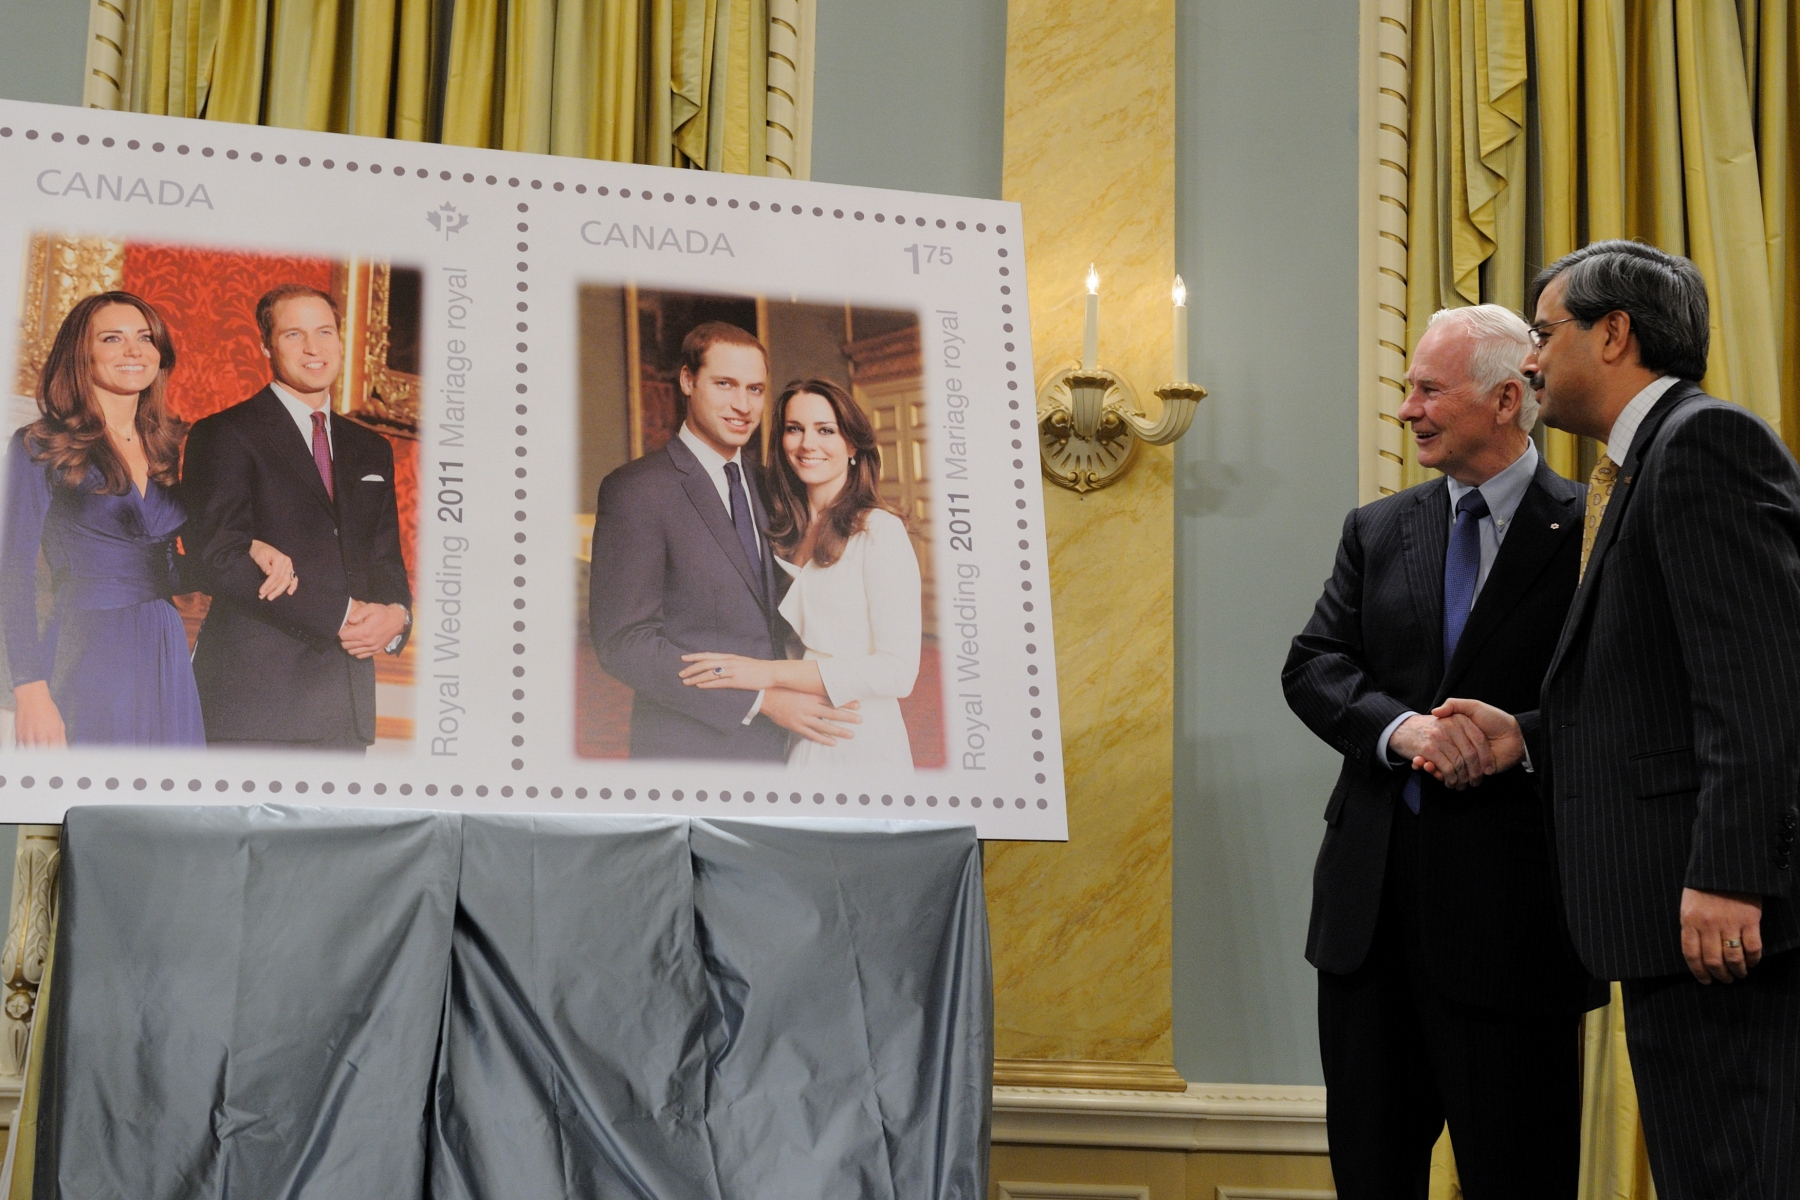 The stamps will be issued on April 29 – the day of the nuptials – and will be available at post offices across Canada.